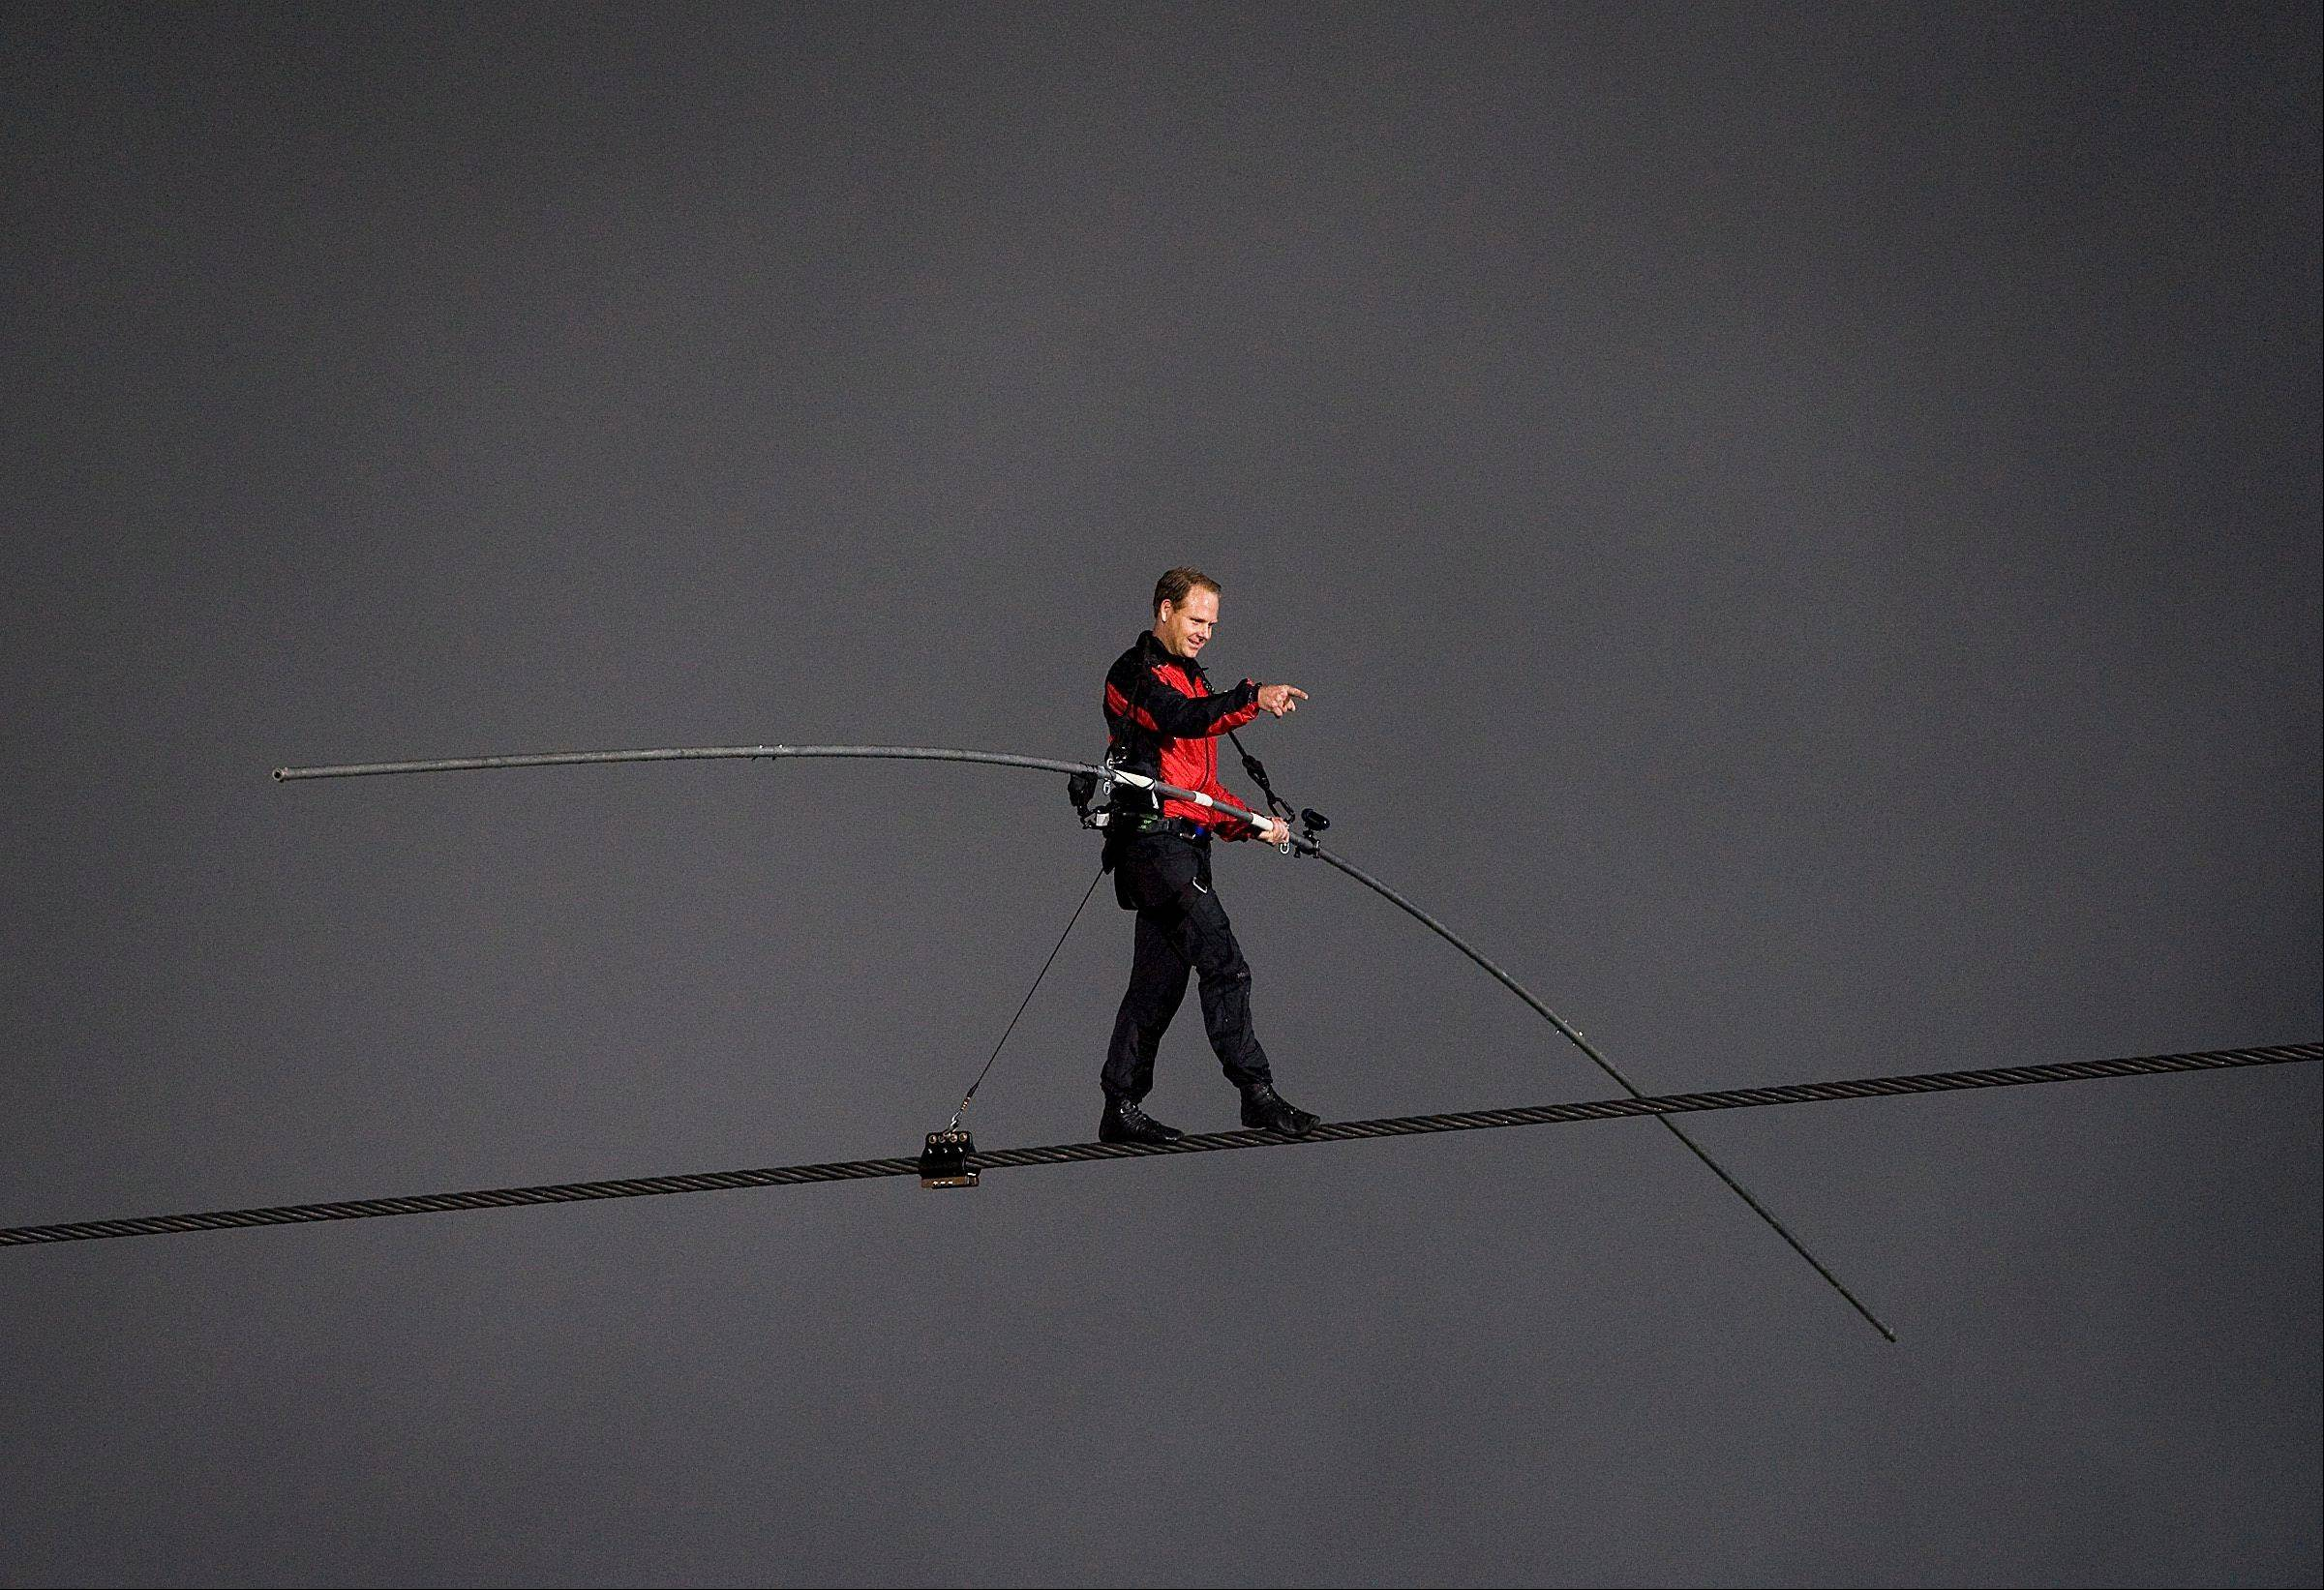 Nik Wallenda points to the crowd of onlookers as he near completion of his 1,800 feet-long tightrope walk over the brink of the Niagara Falls in Niagara Falls, Ont., on Friday, June 15, 2012. Wallenda battled brisk winds and thick mist Friday to make history, becoming the first person to walk across Niagara Falls on a tightrope.